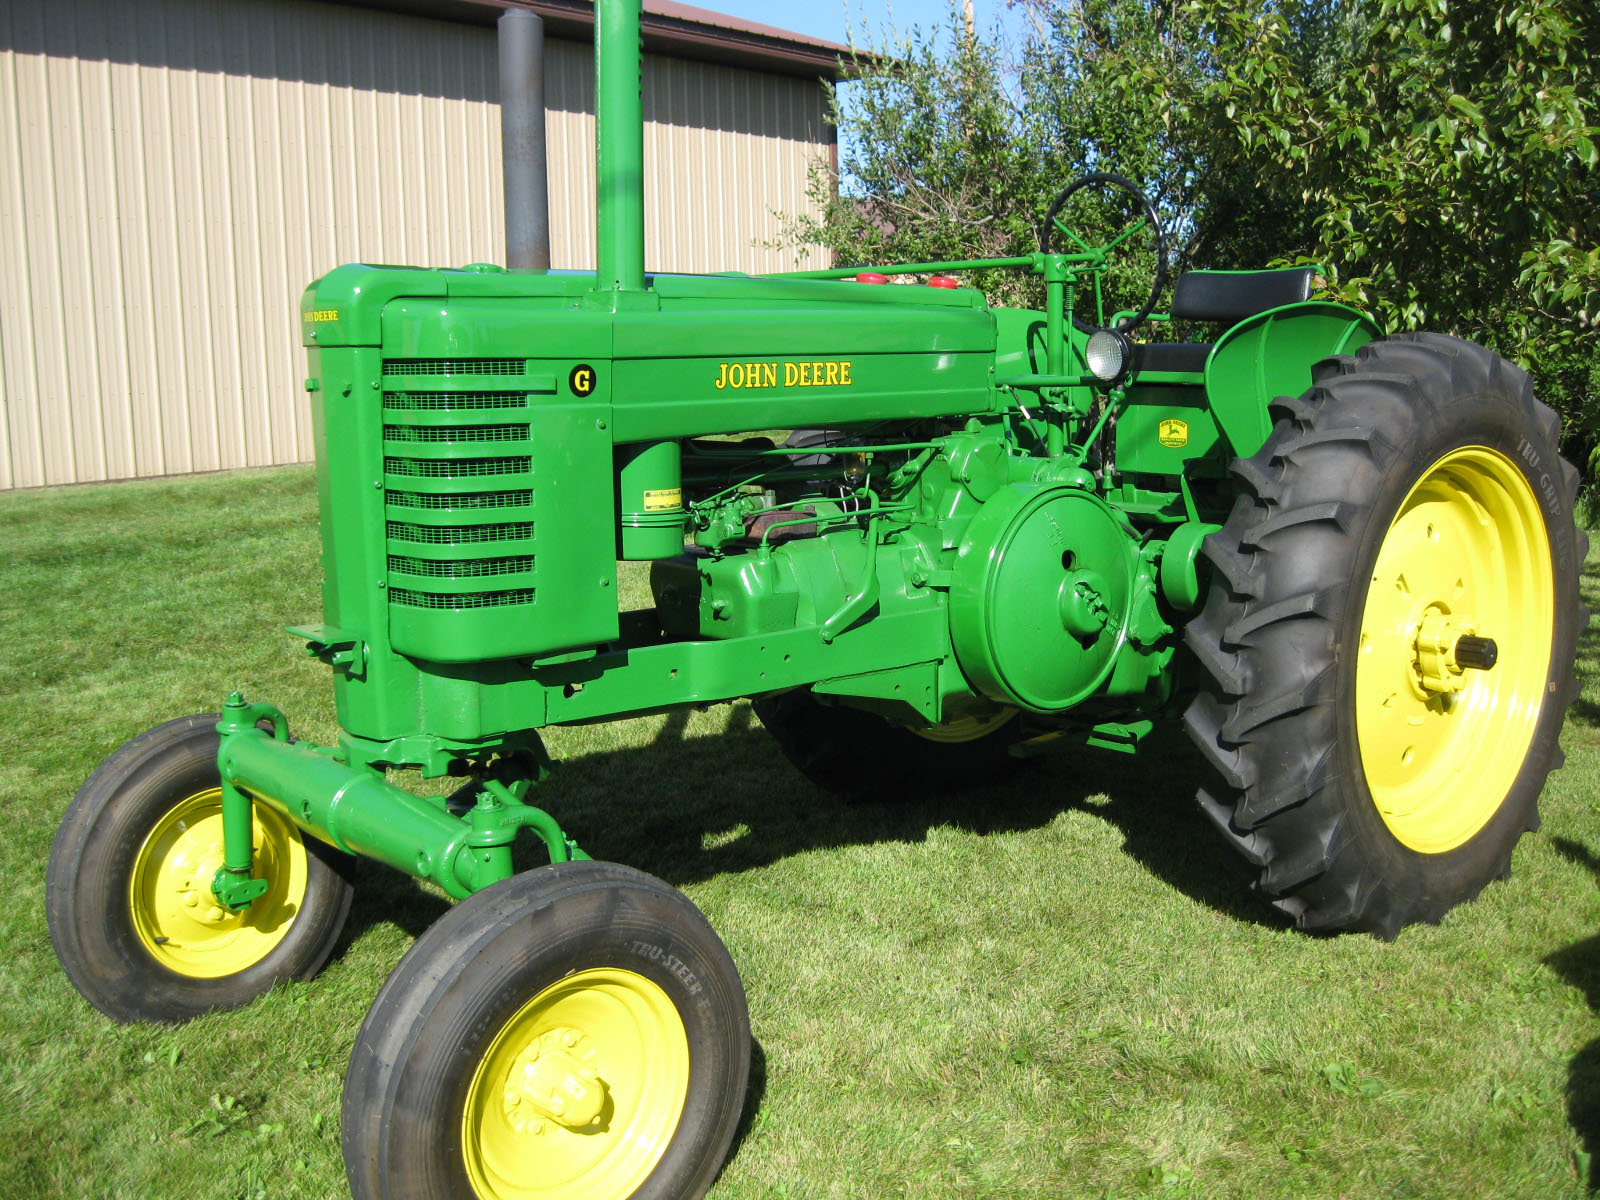 john deere g tractor for sale photosynthesis and respiration cycle diagram model best deer photos